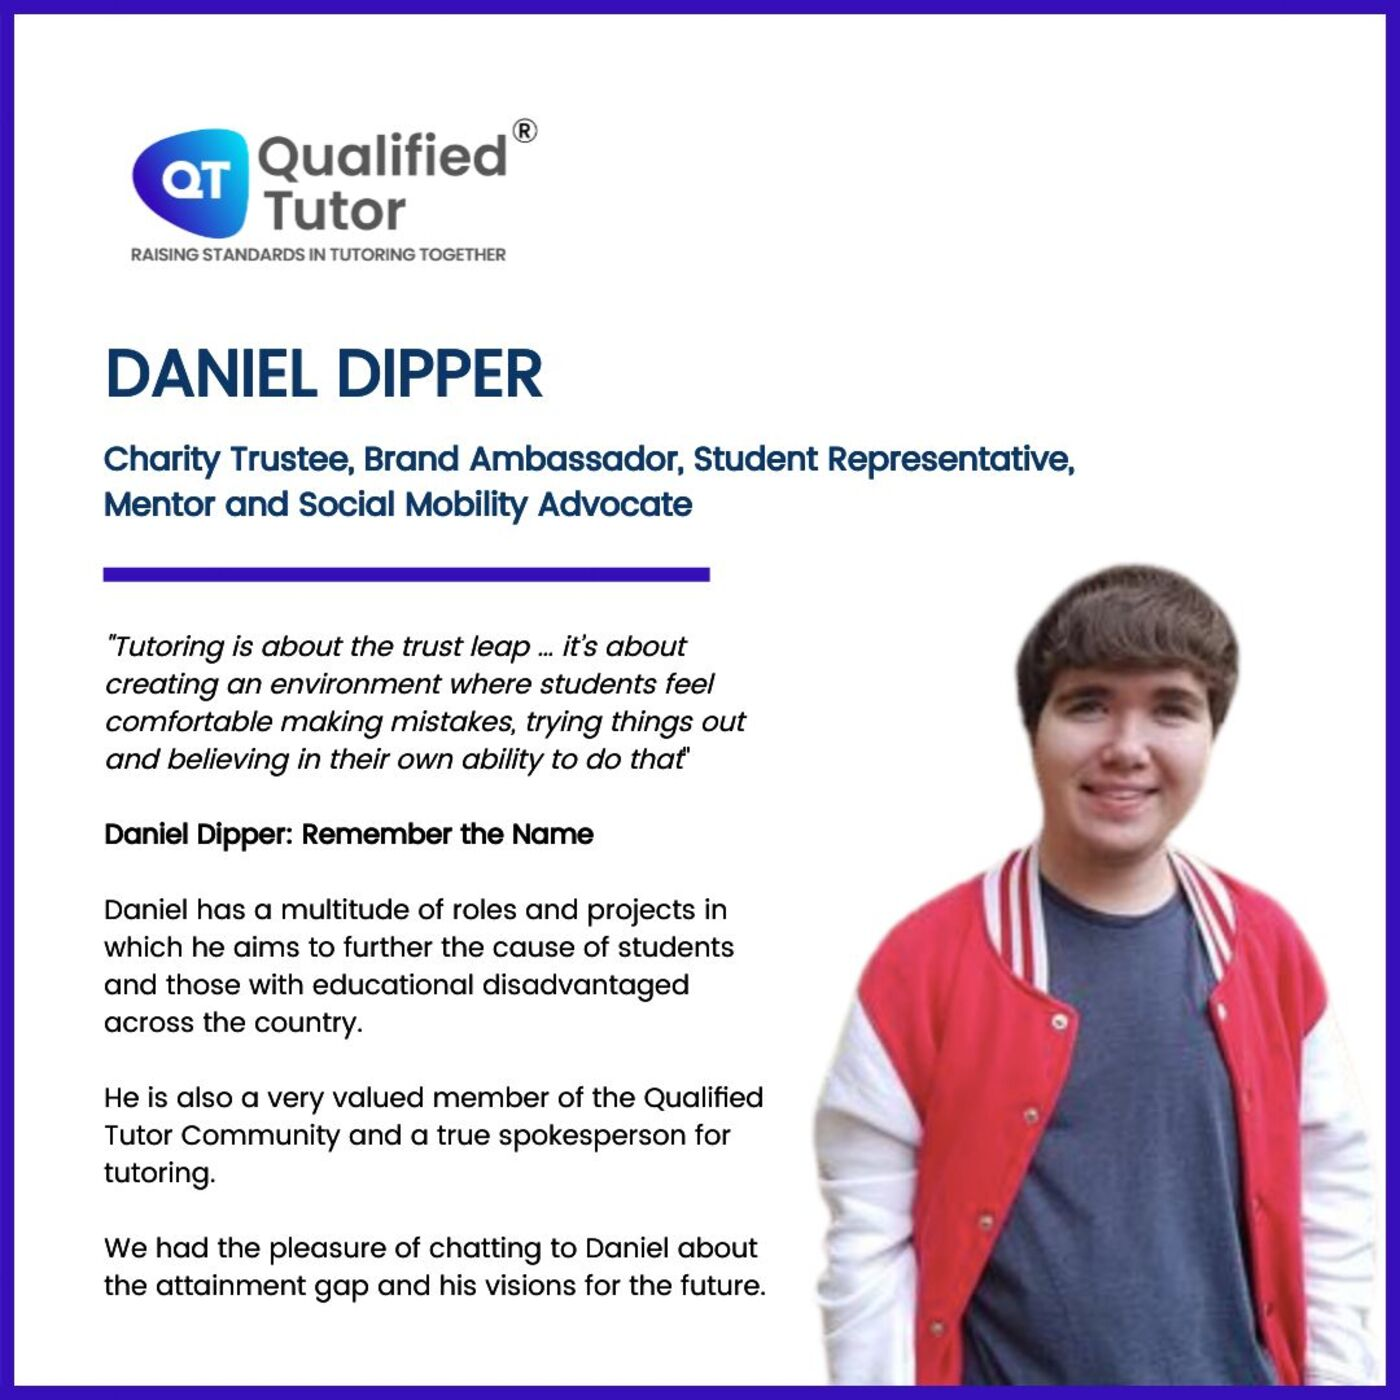 This is How Tutoring Can Play a Key Role in Reducing Educational Disadvantage, with Daniel Dipper